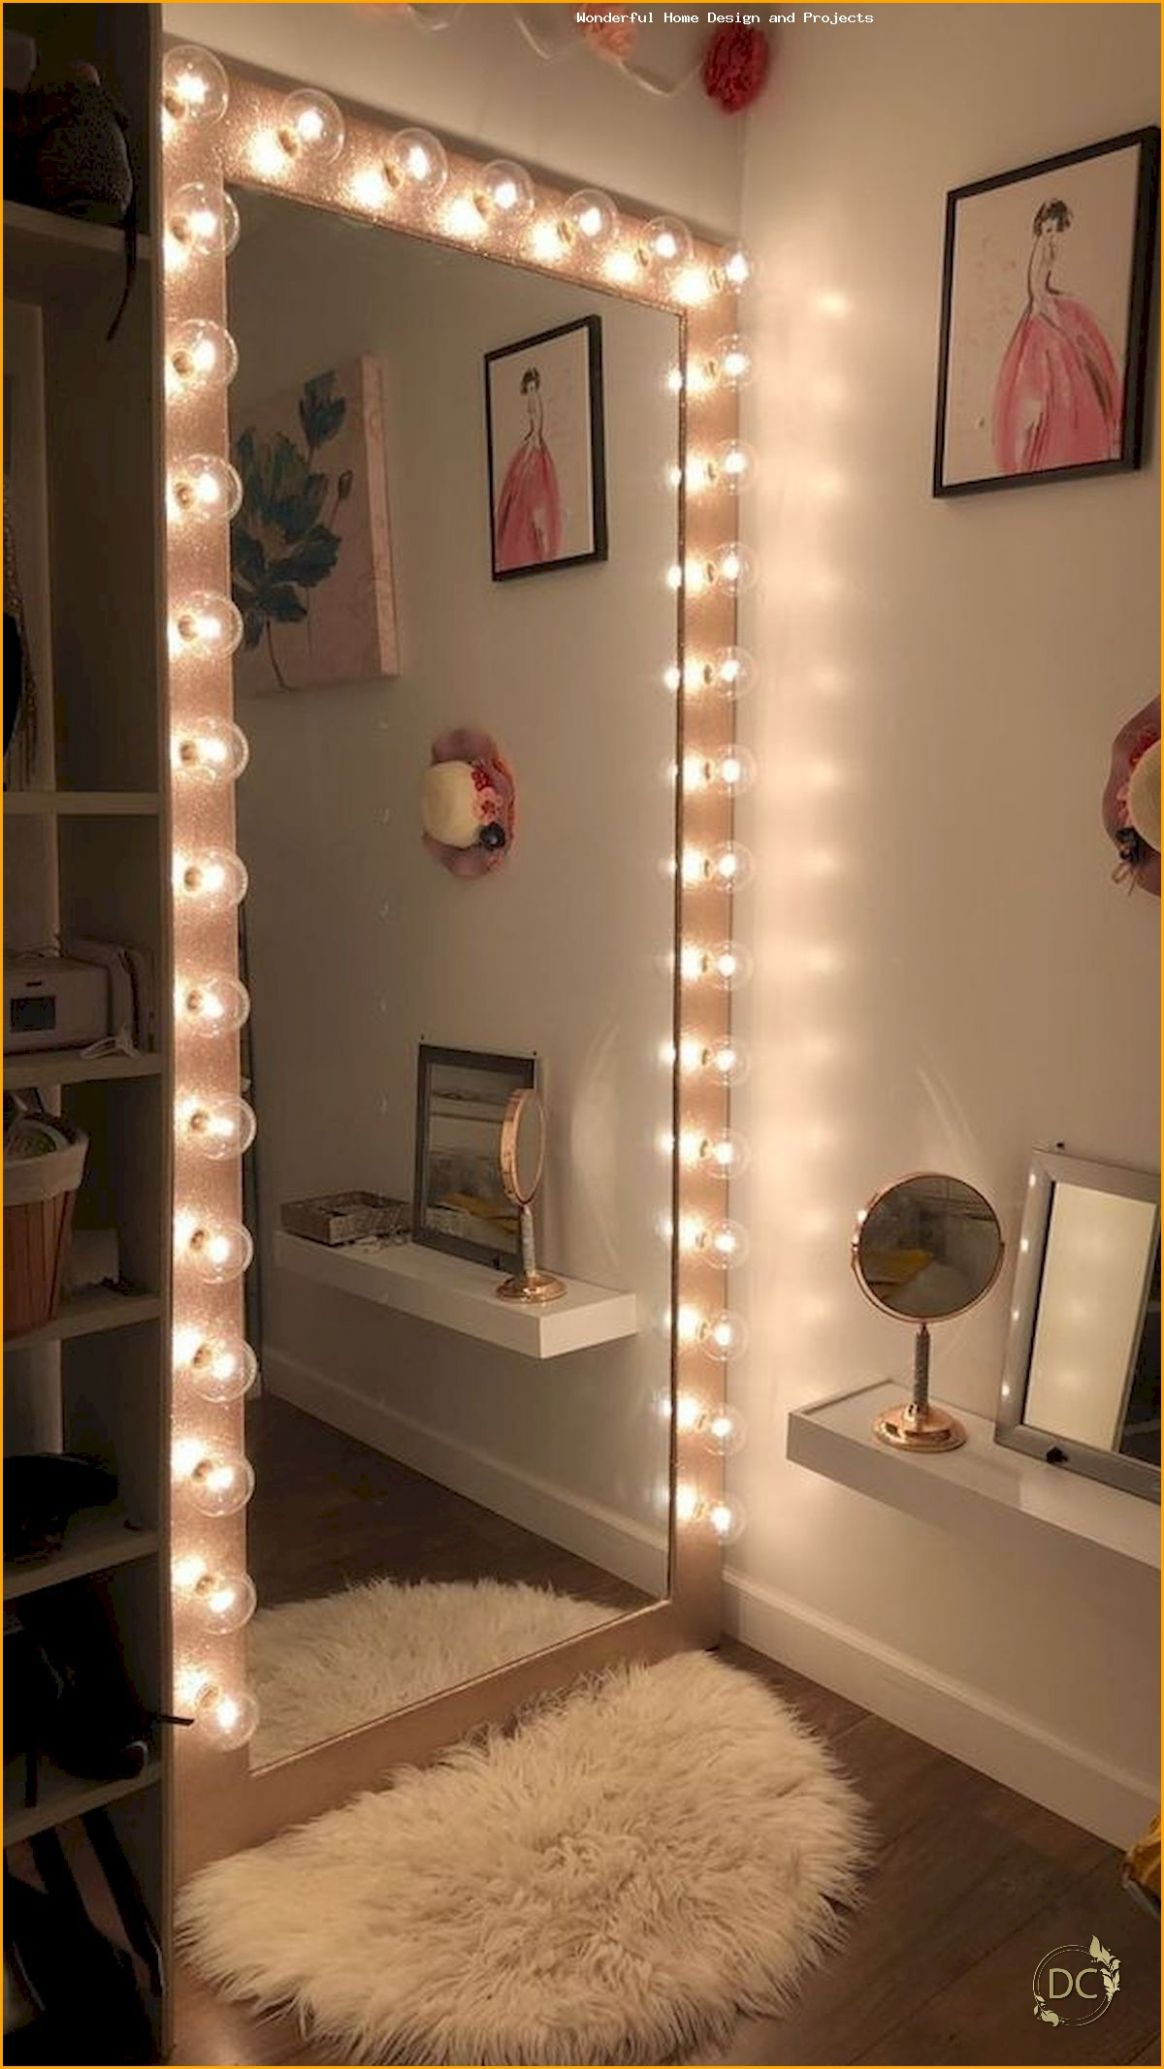 9 Lovely Makeup Rooms Decor Ideas And Remodel - Wonderful Home ..